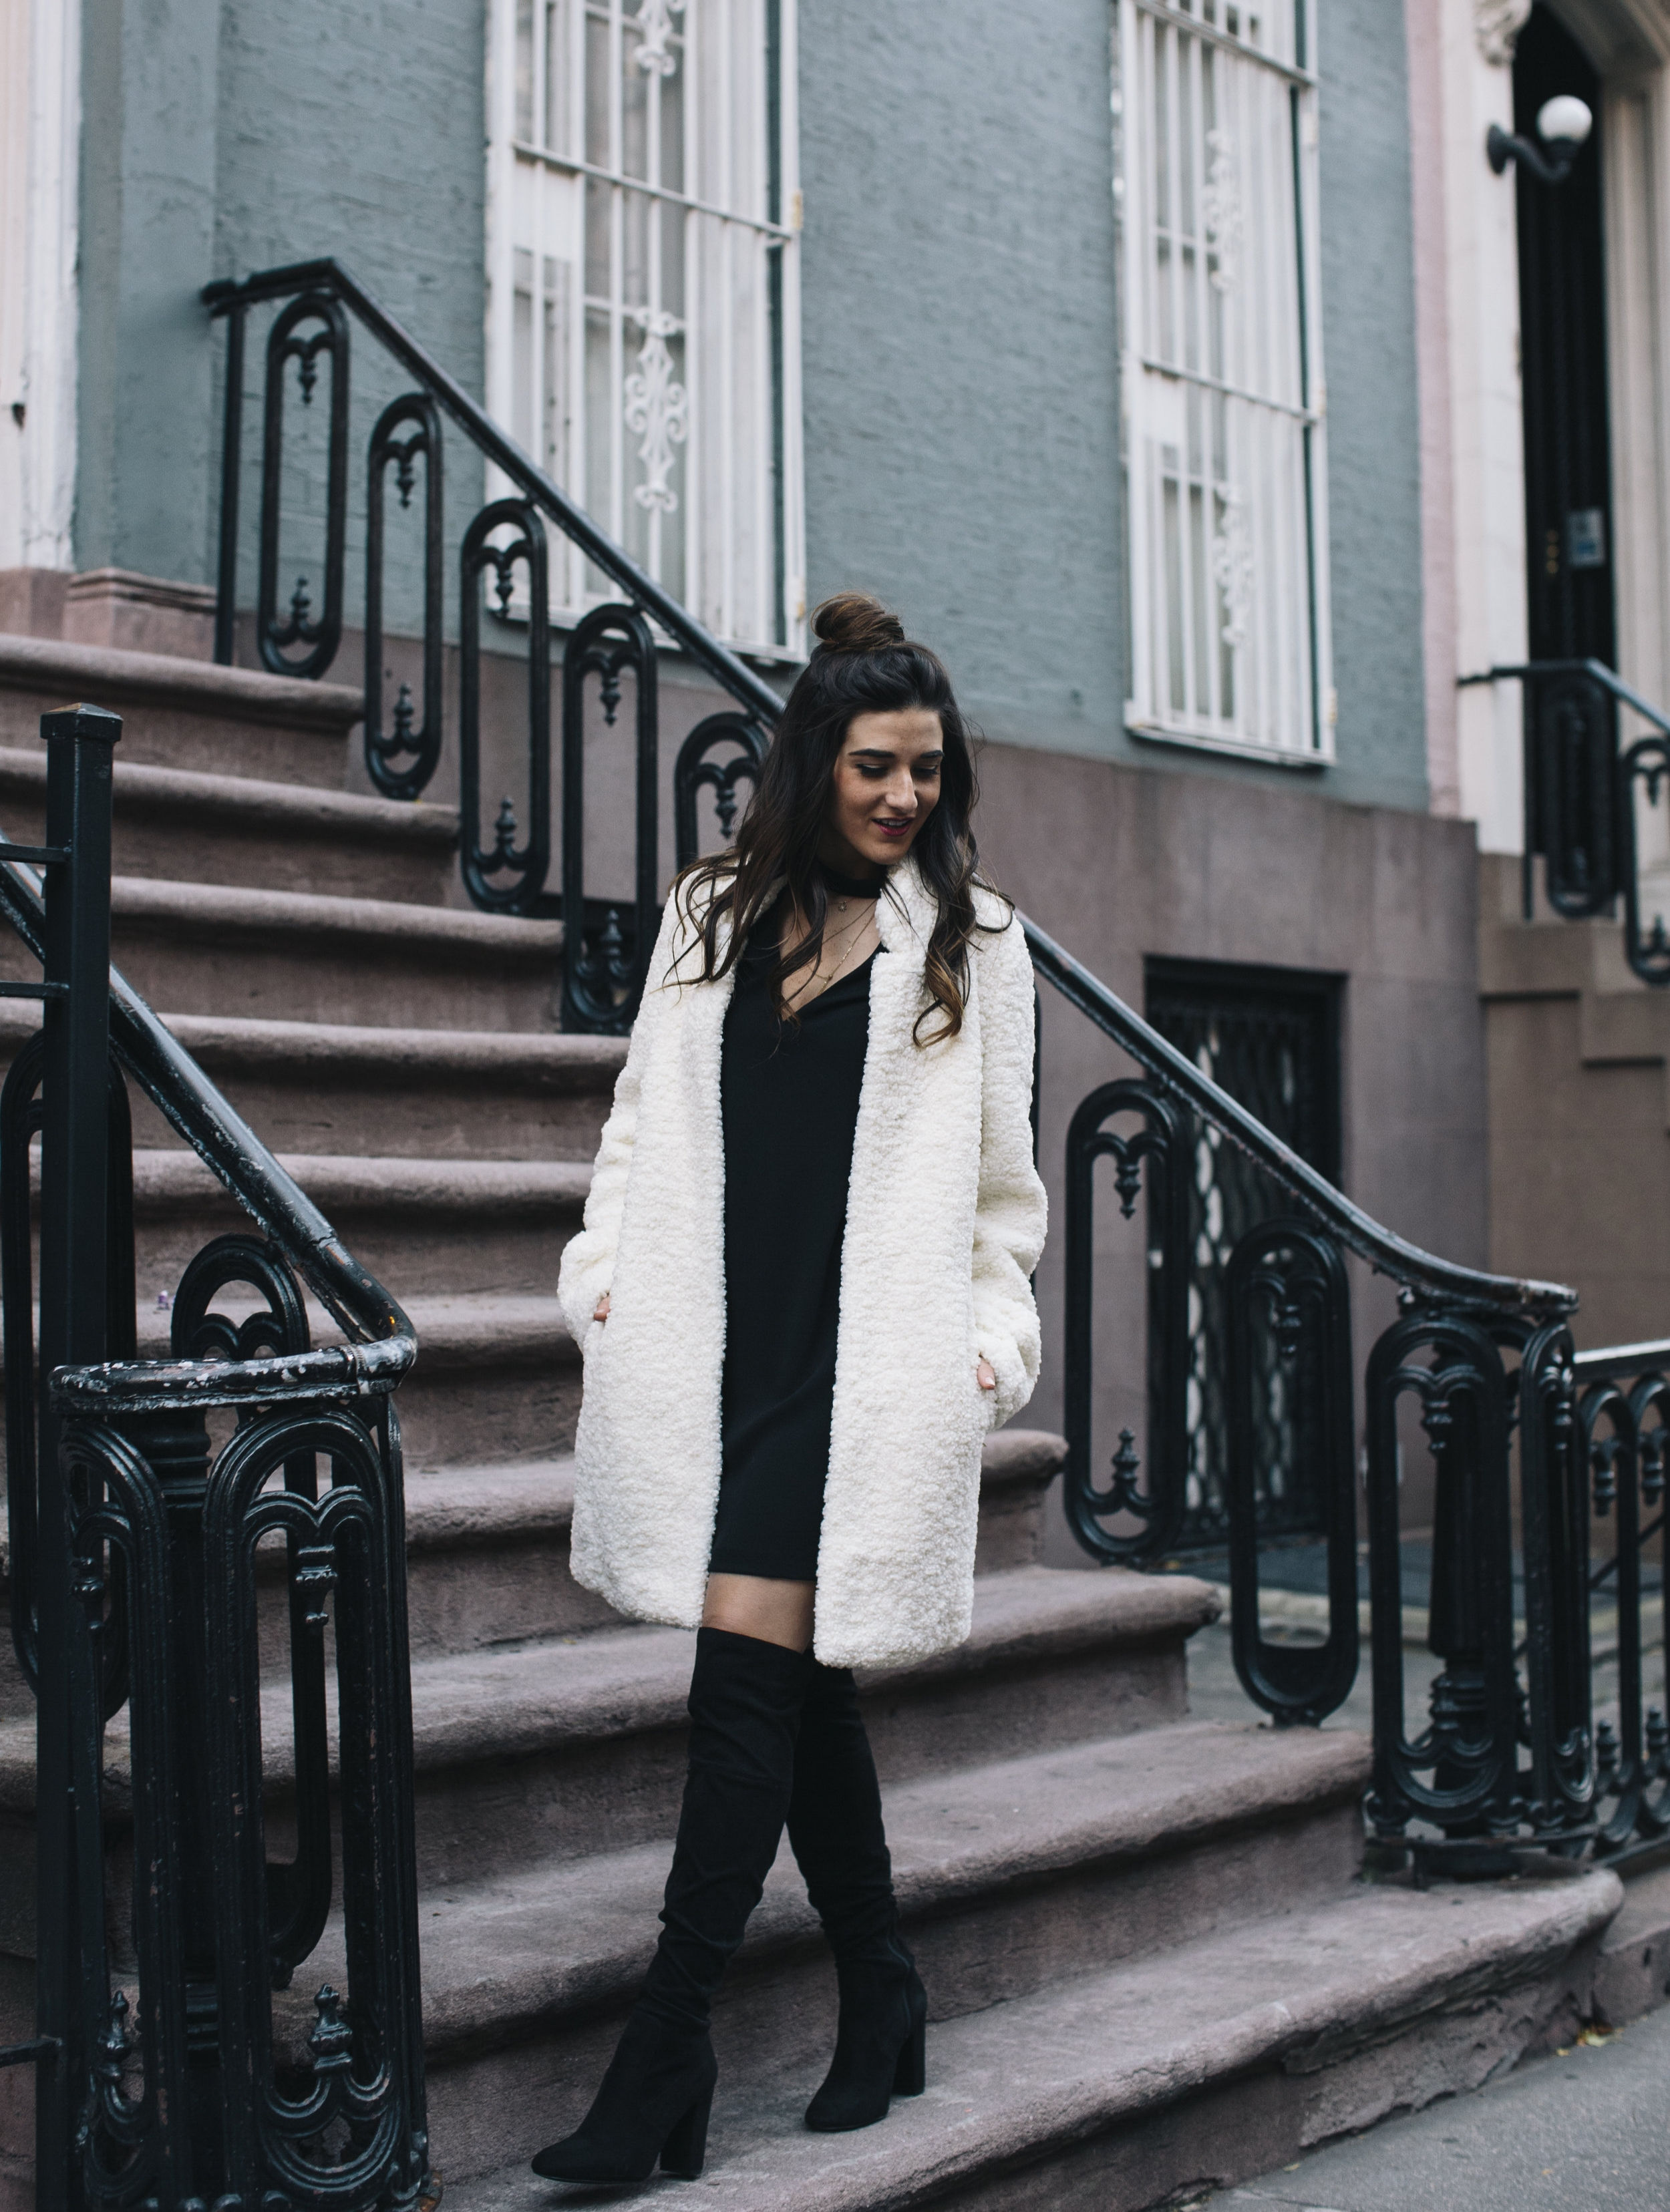 Teddy Bear Coat + OTN Boots How To Avoid Blogger Depression Louboutins & Love Fashion Blog Esther Santer NYC Street Style Blogger Outfit OOTD Trendy Ivanka Trump Nordstrom Bloomingdales Black Dress Zara Pretty Online Shopping Shoes Bun Wear Women Girl.jpg